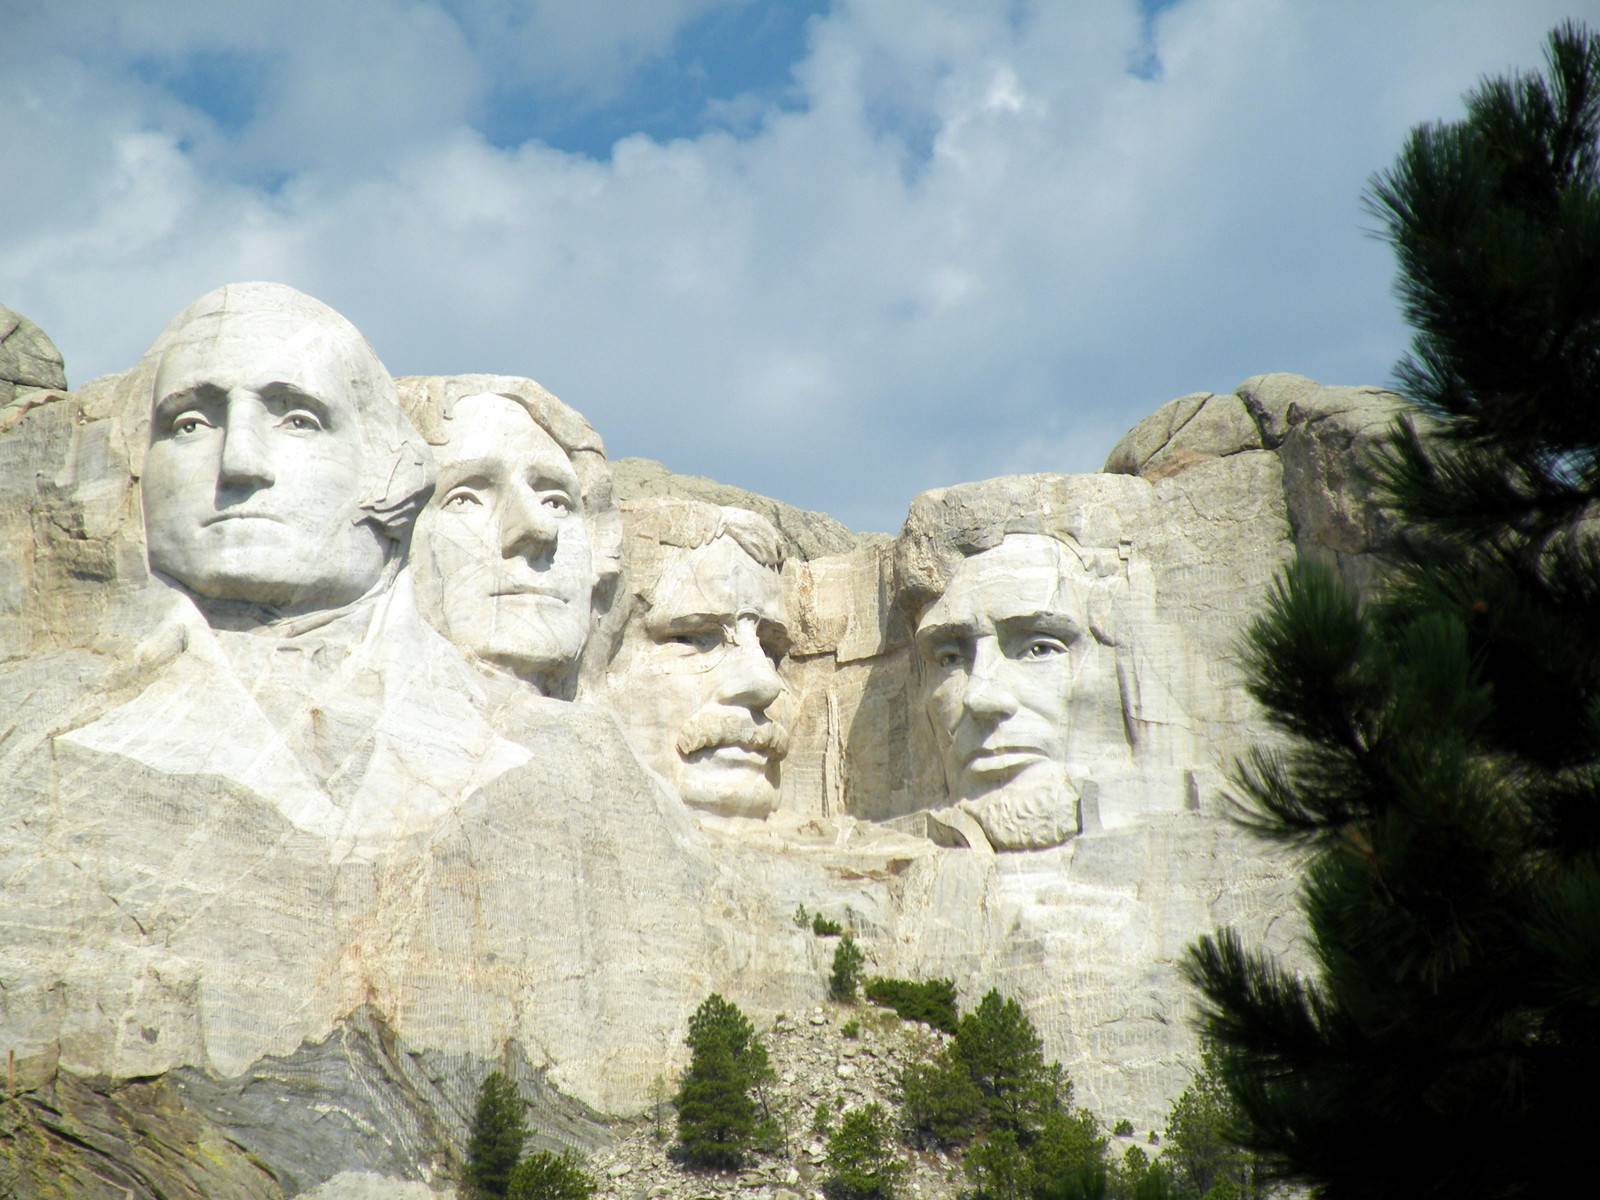 10-Day Majestic West Coast Tour From Denver: Badlands, Windcave, Yellowstone & Mt Rushmore